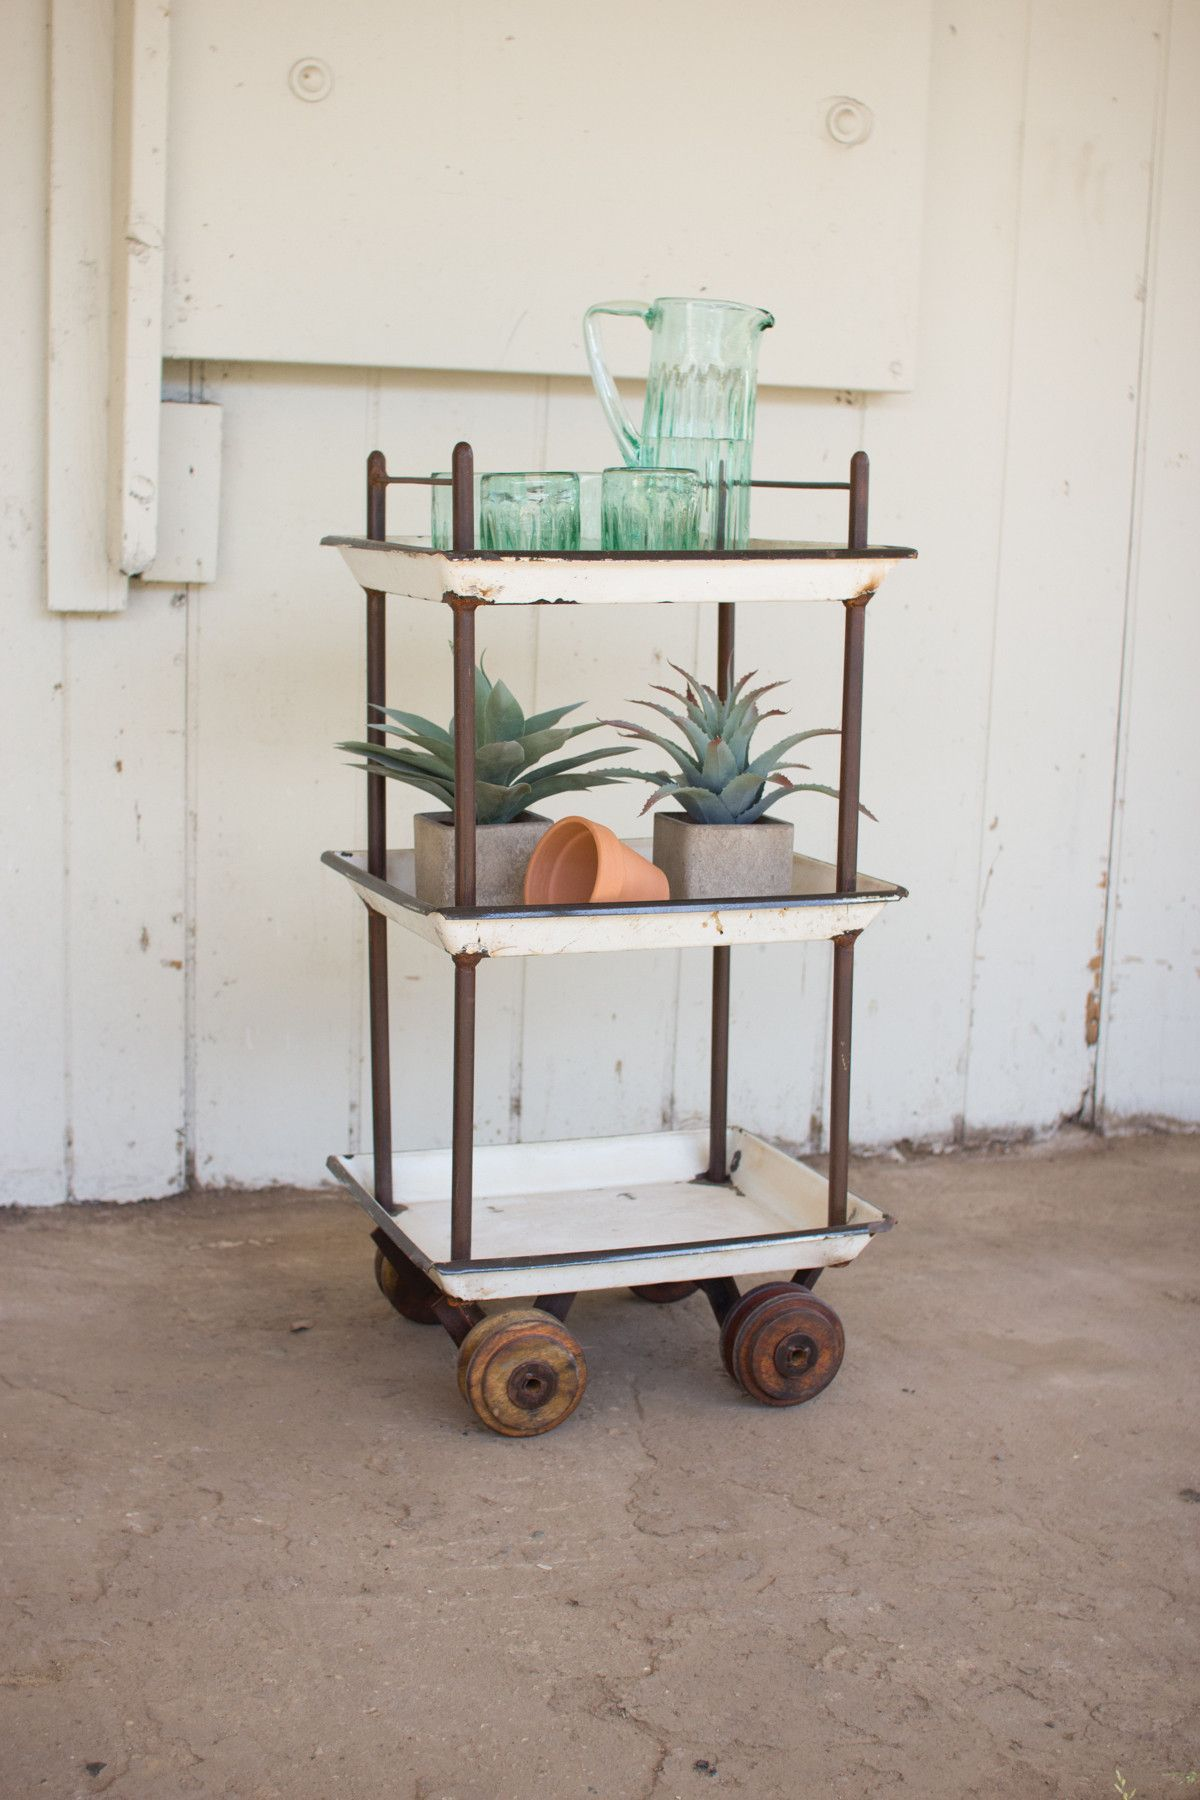 Recycled Enamel Trays Bar Cart With Wooden Casters – First of a Kind